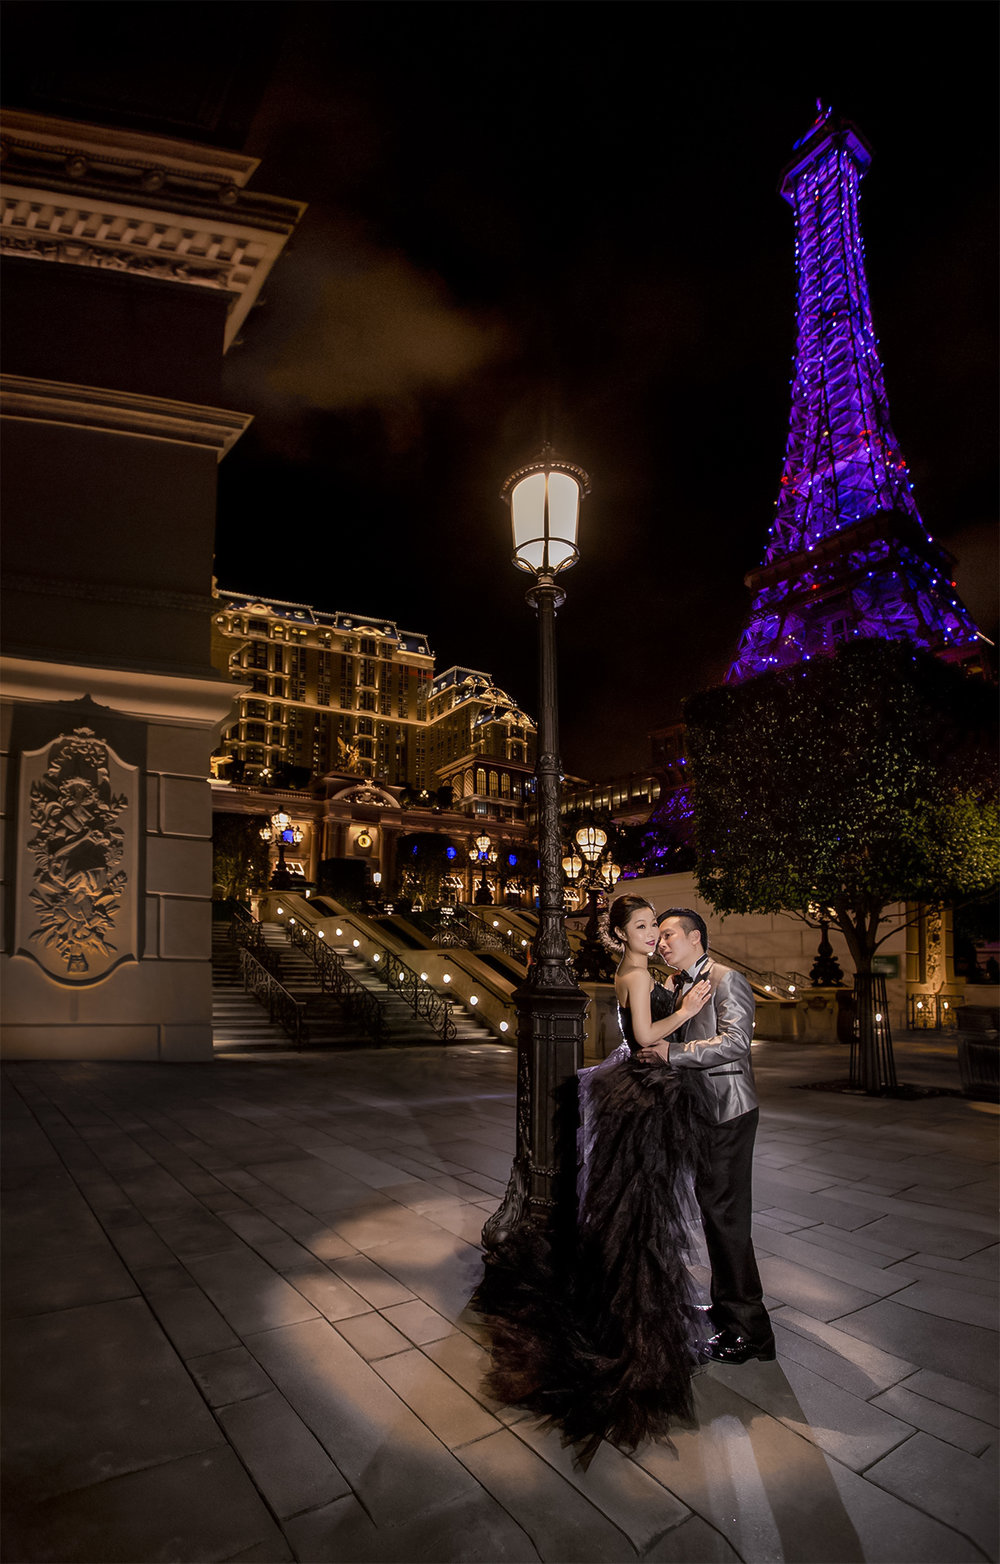 Macau Prewedding - Parisian